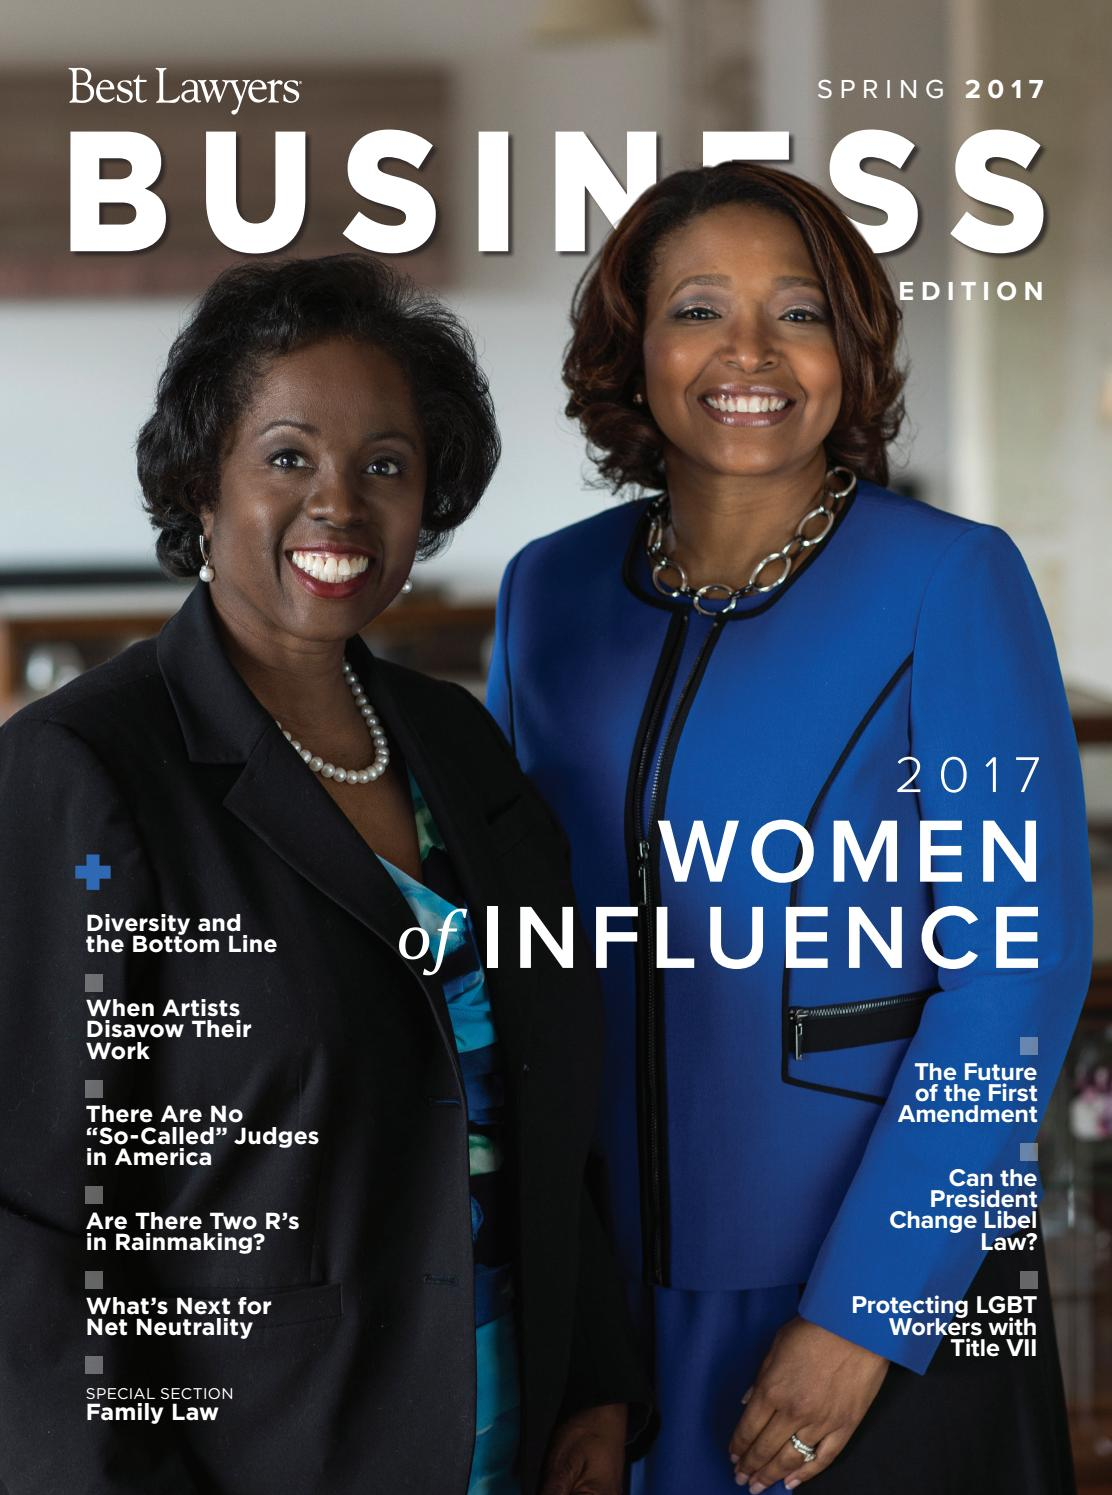 Haag Kamine Spring Business Edition 2017 By Best Lawyers Issuu